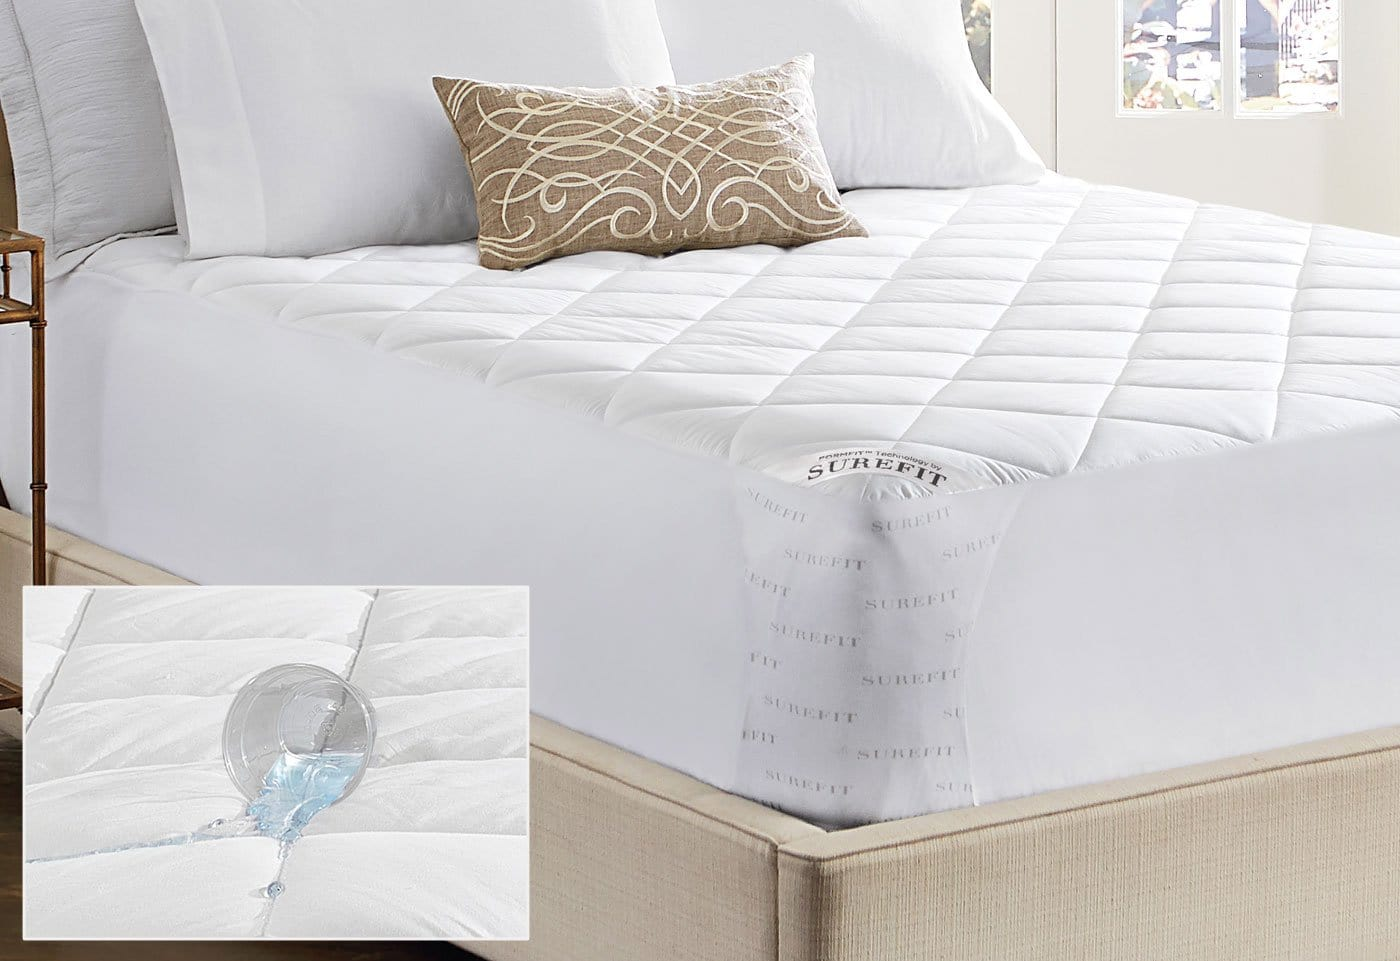 Durasoft Waterproof Mattress Pad - Twin